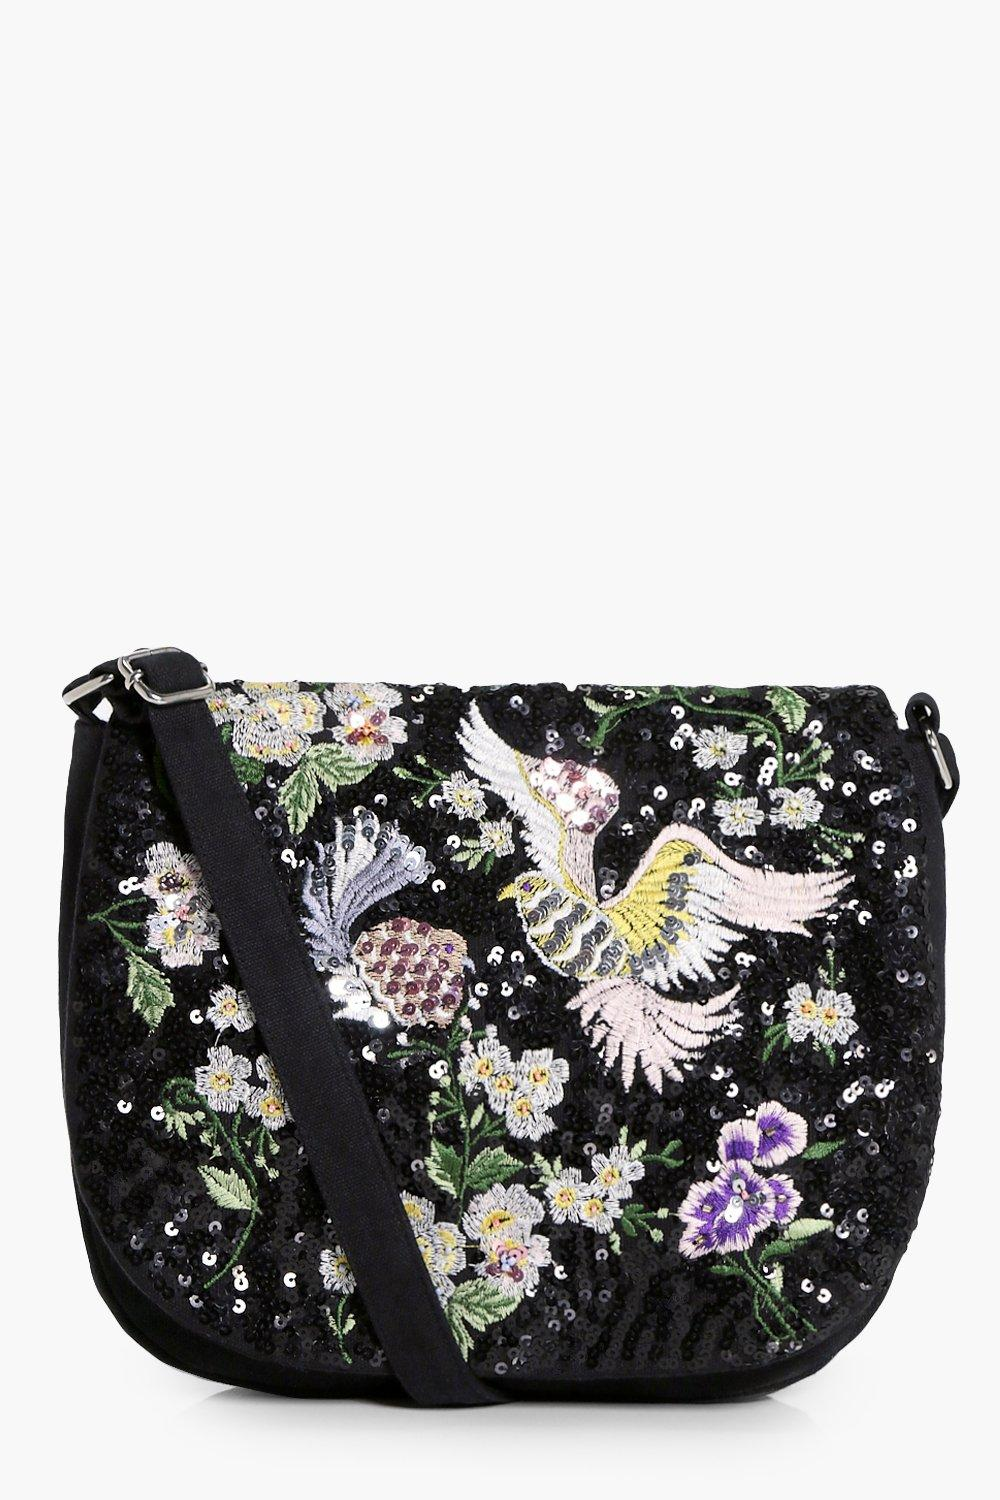 Bird & Floral Embellished Saddle Bag - black - Saf